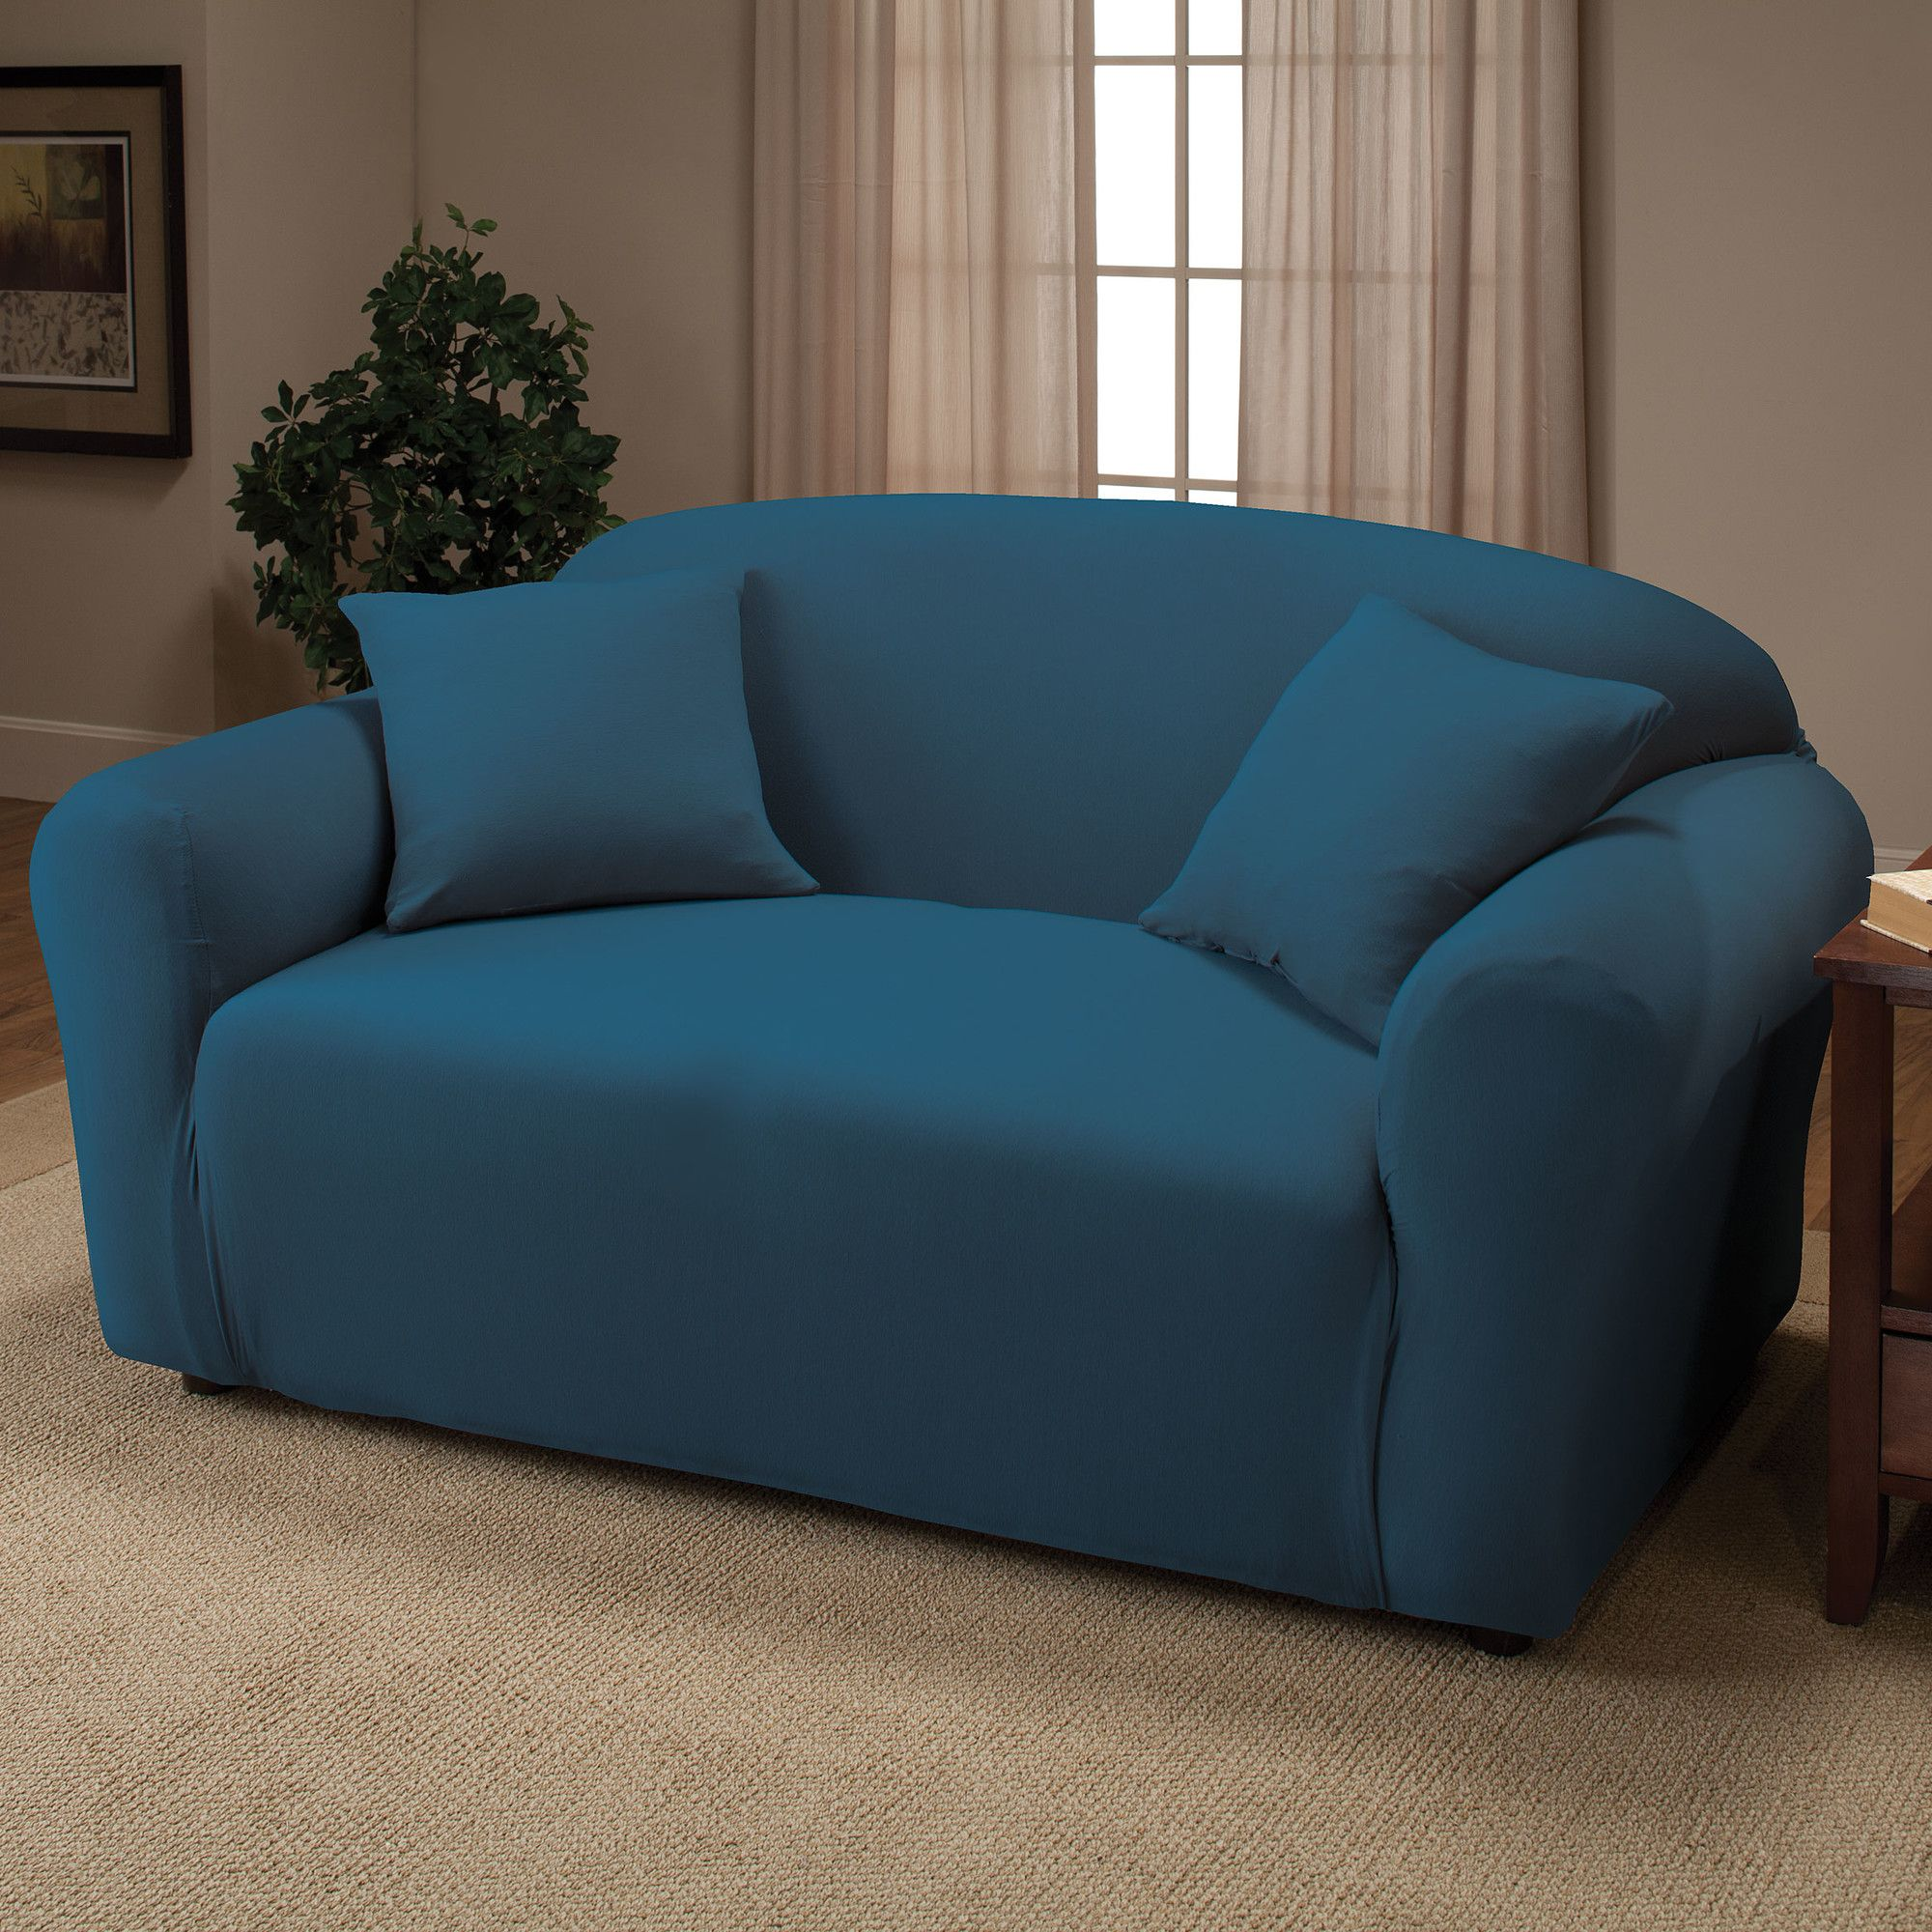 stretch jersey loveseat slipcover for sale wayfair for the home loveseat slipcovers. Black Bedroom Furniture Sets. Home Design Ideas